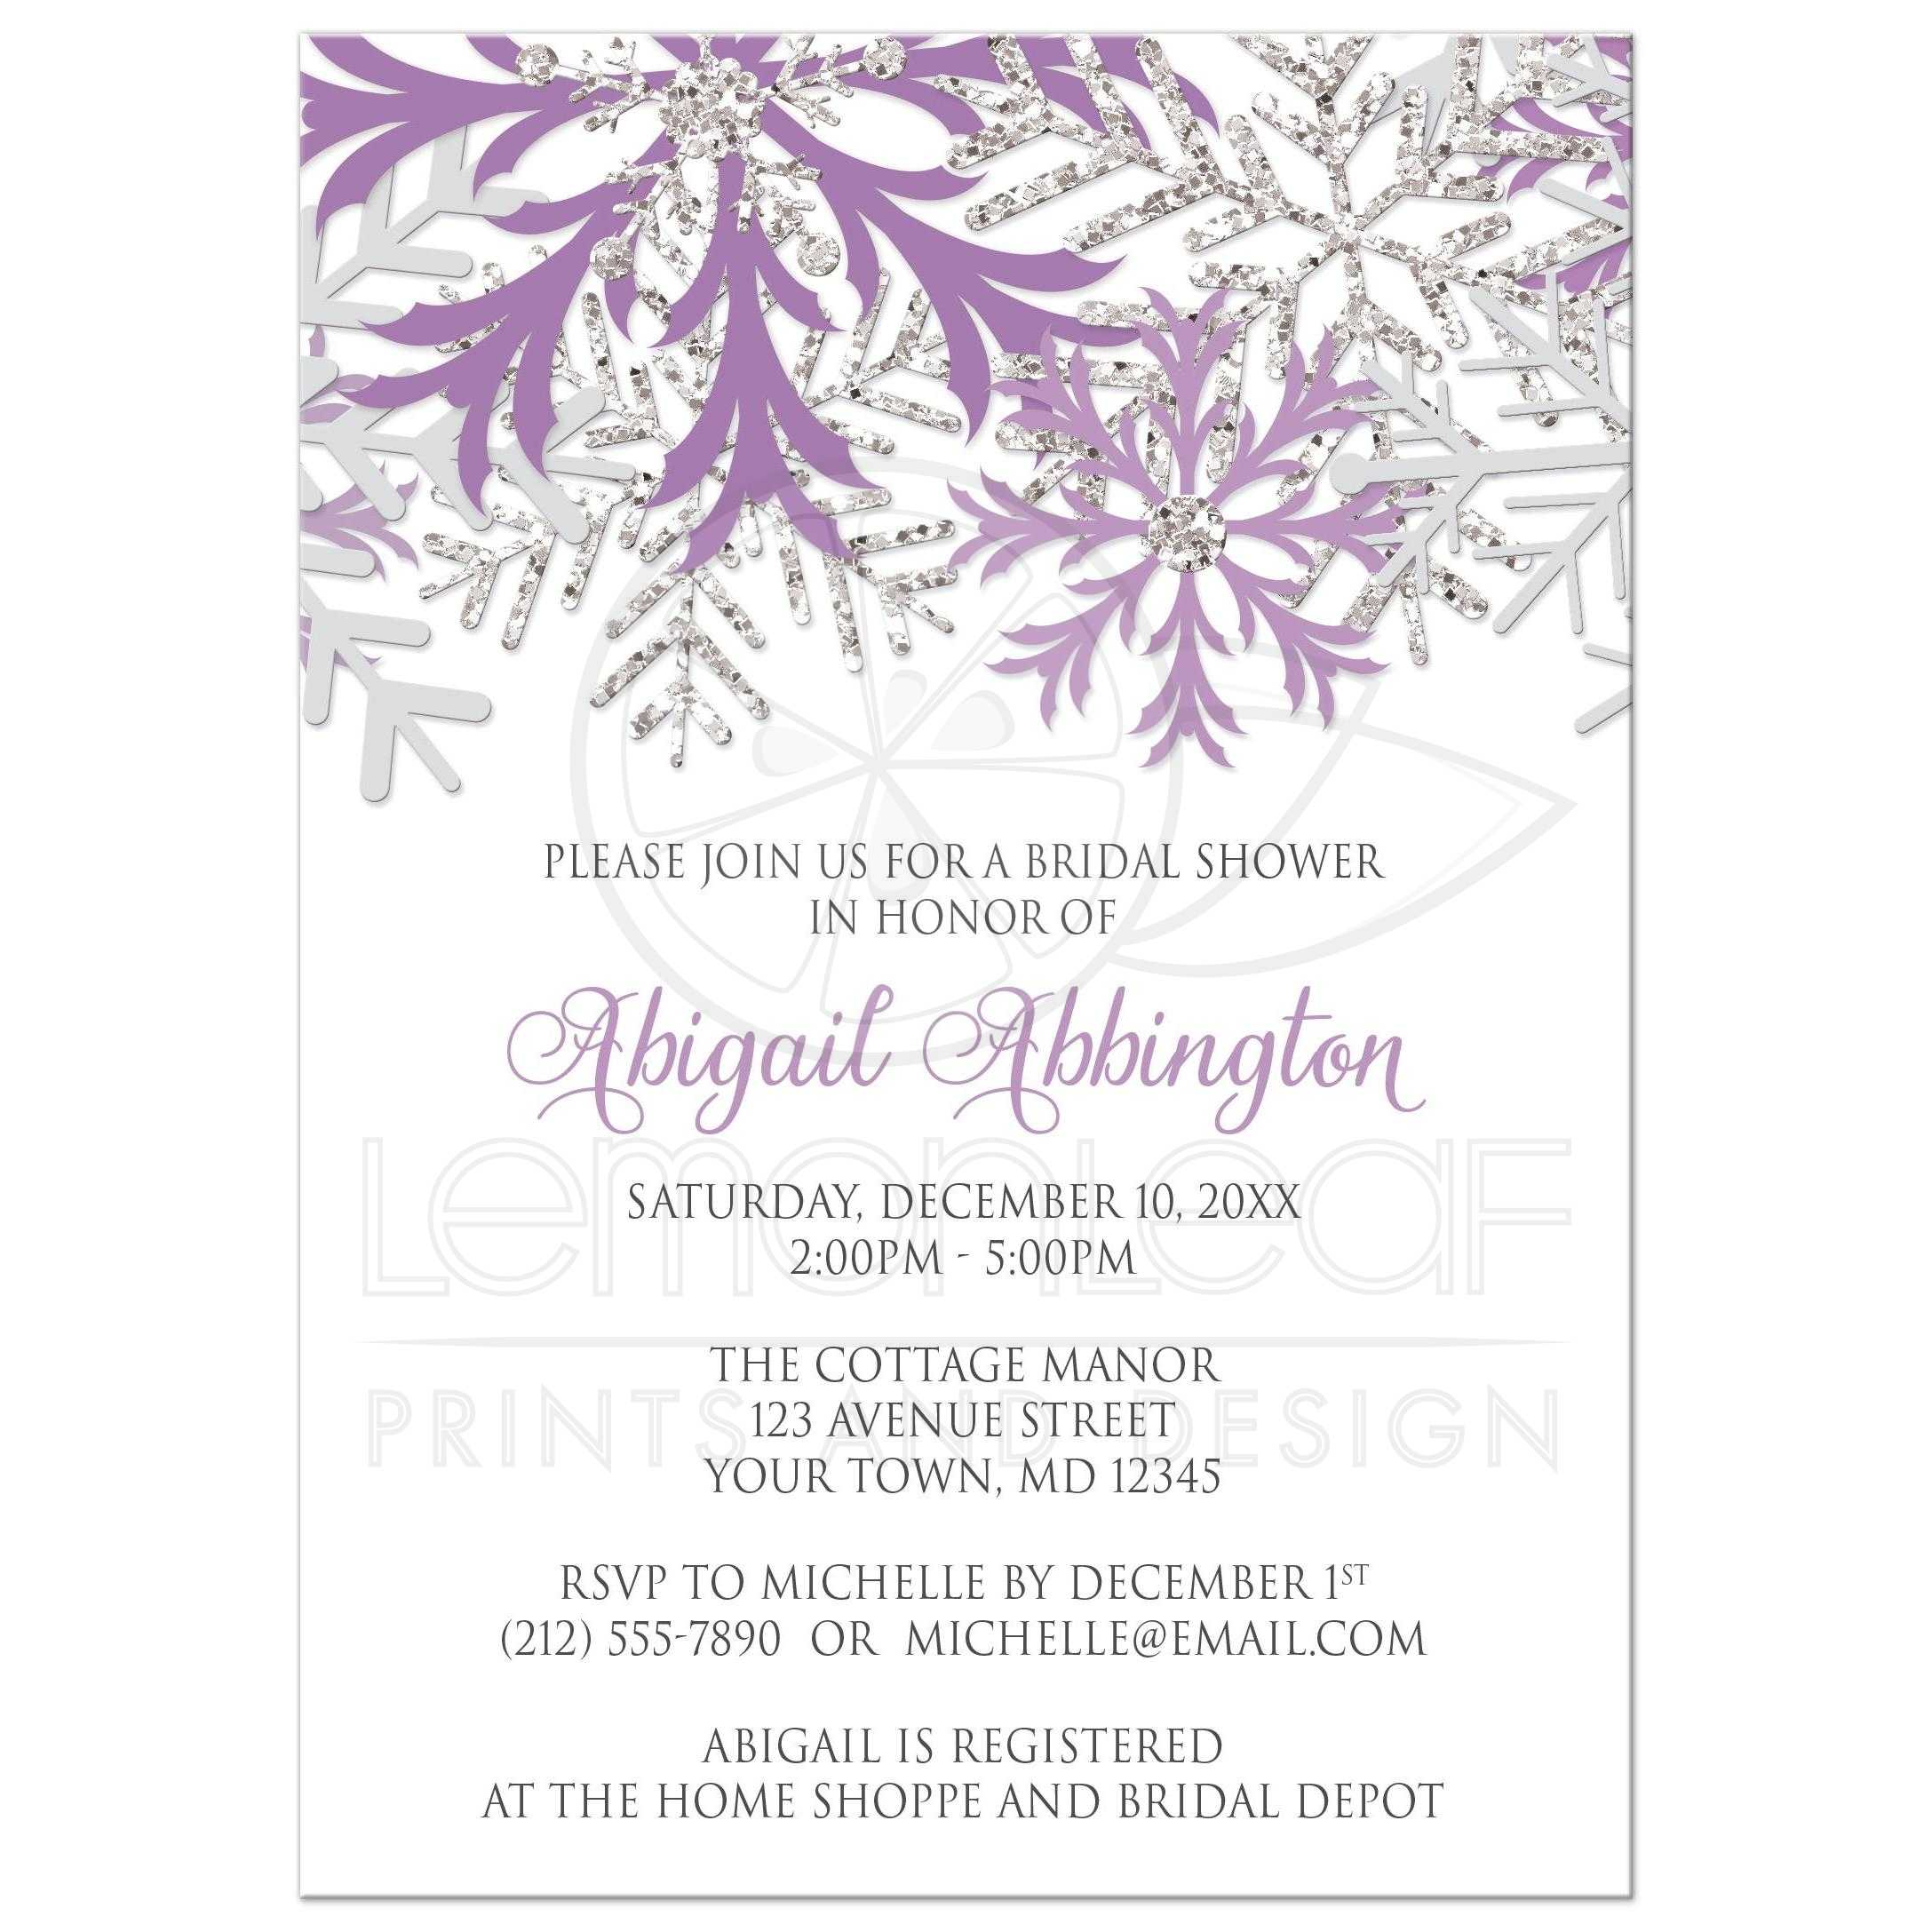 Bridal Shower Invitations - Winter Snowflake Purple Silver